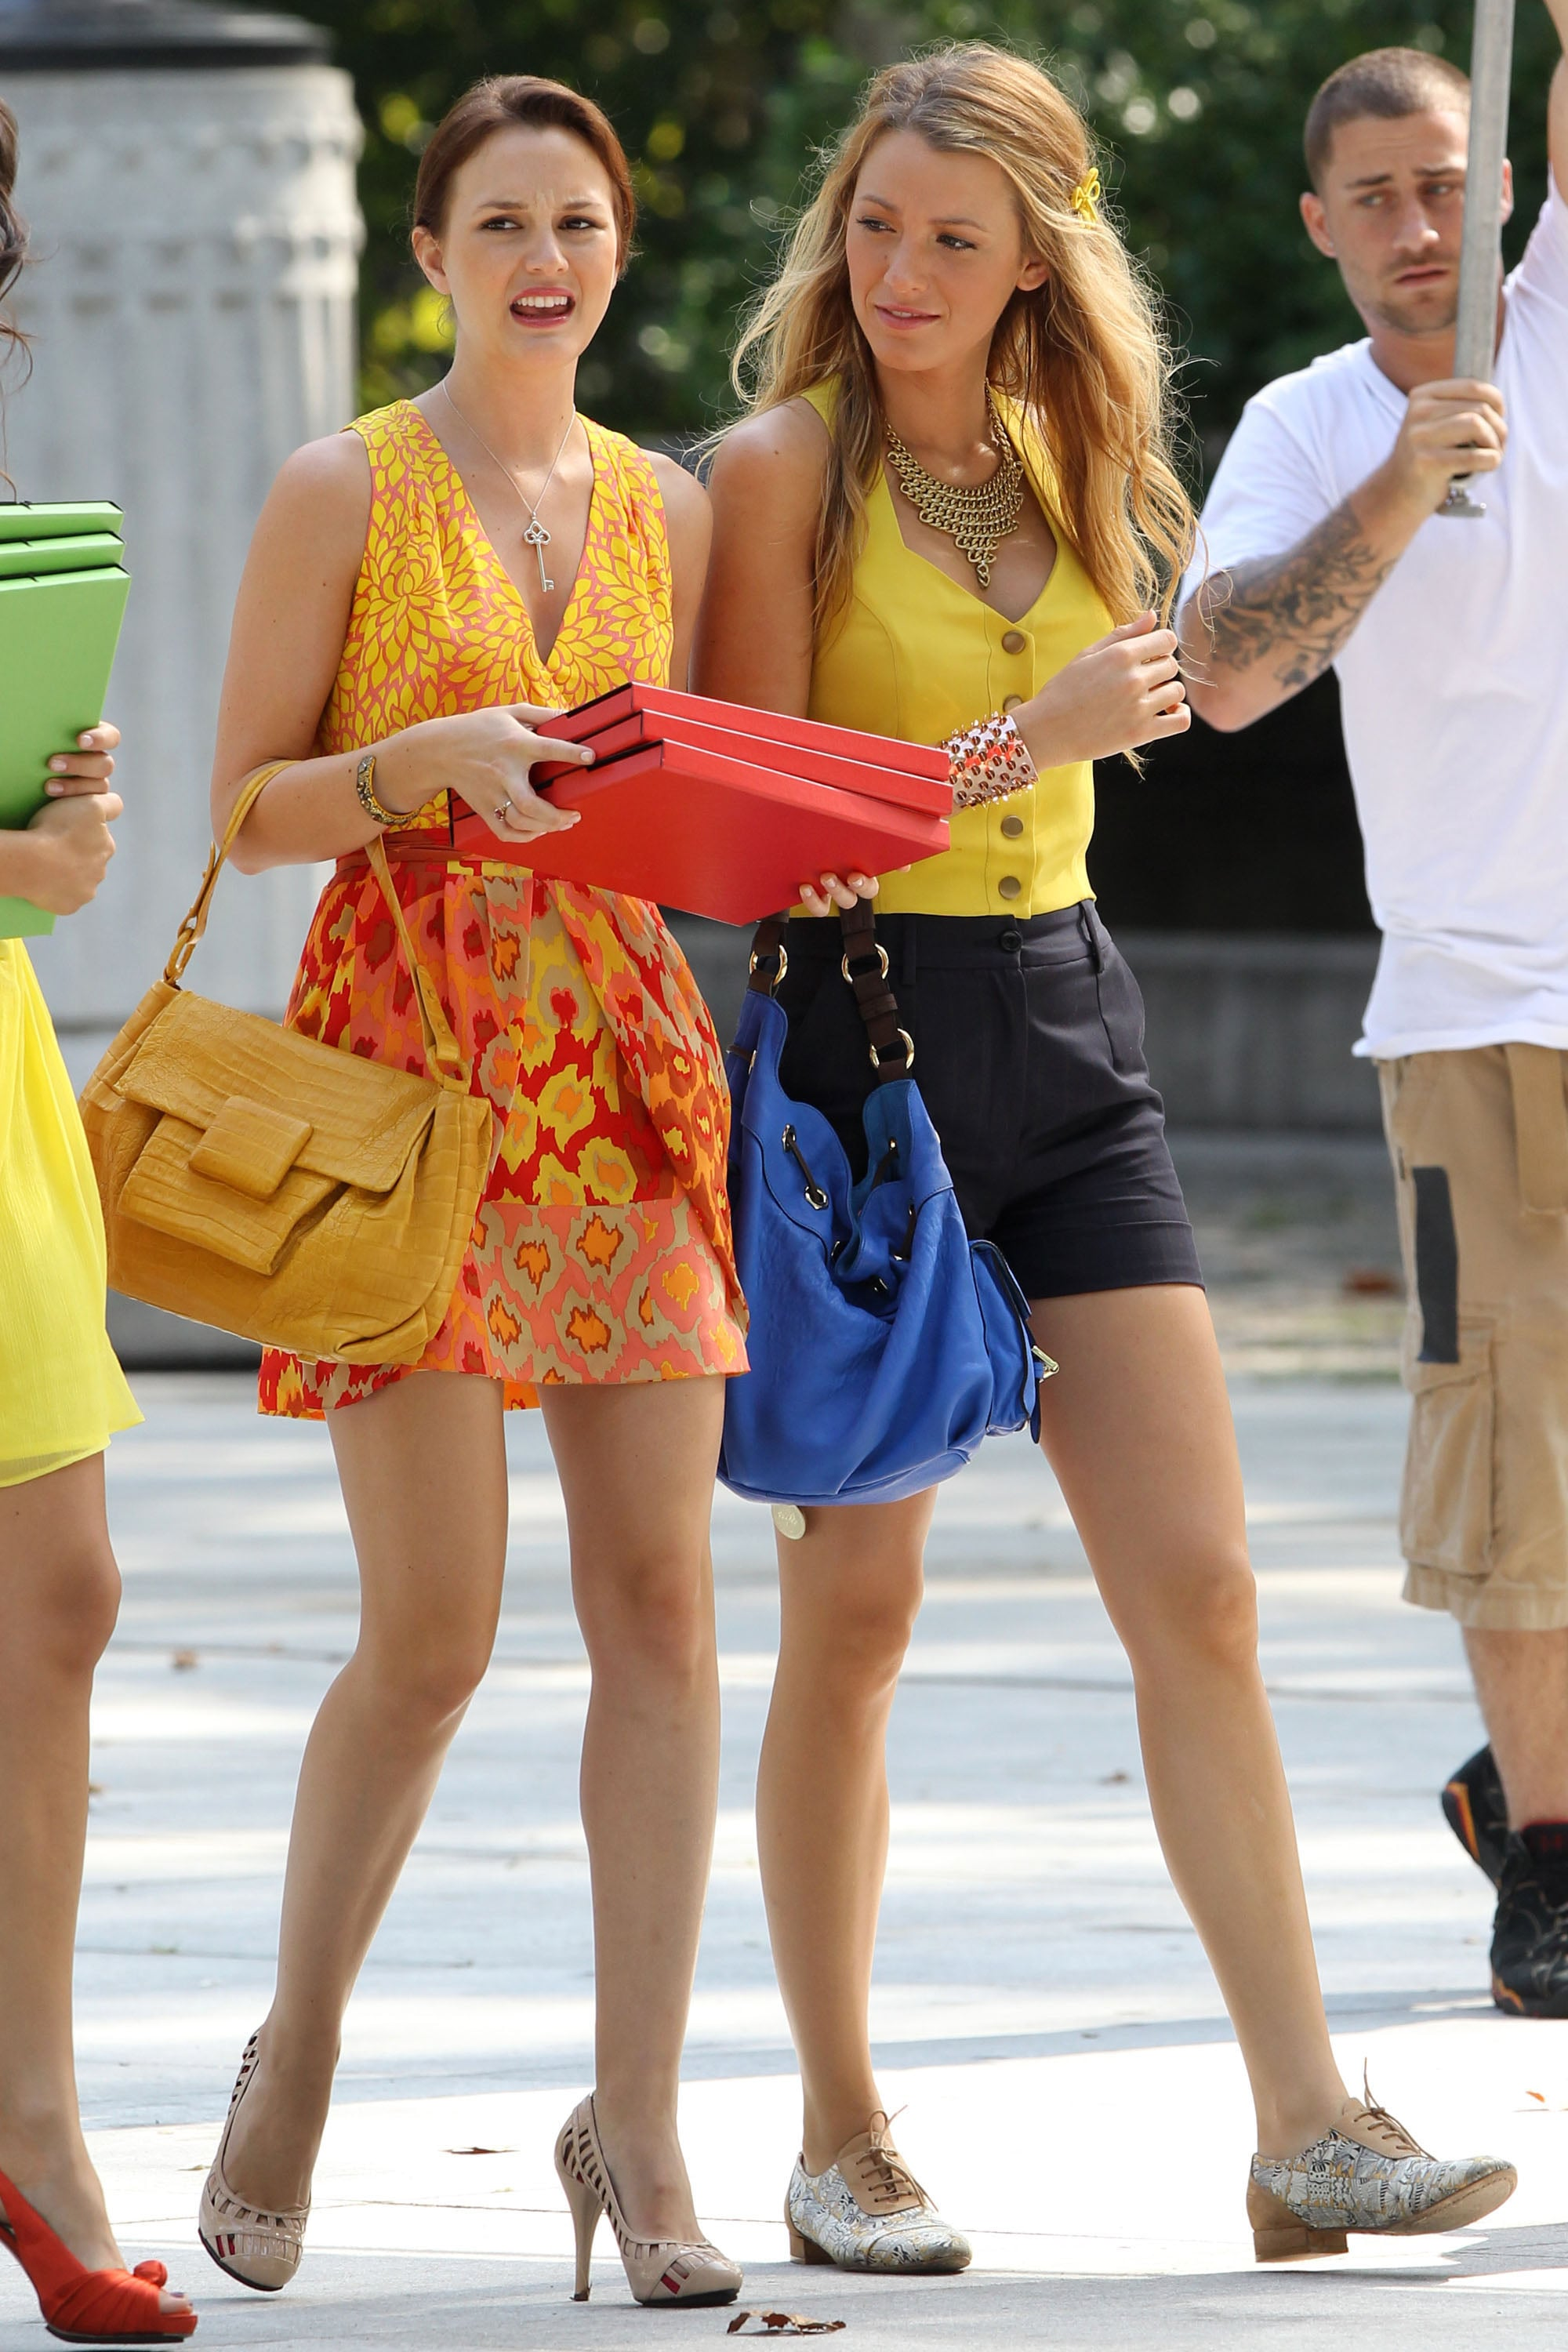 blake lively and leighton meester filming gossip girl in